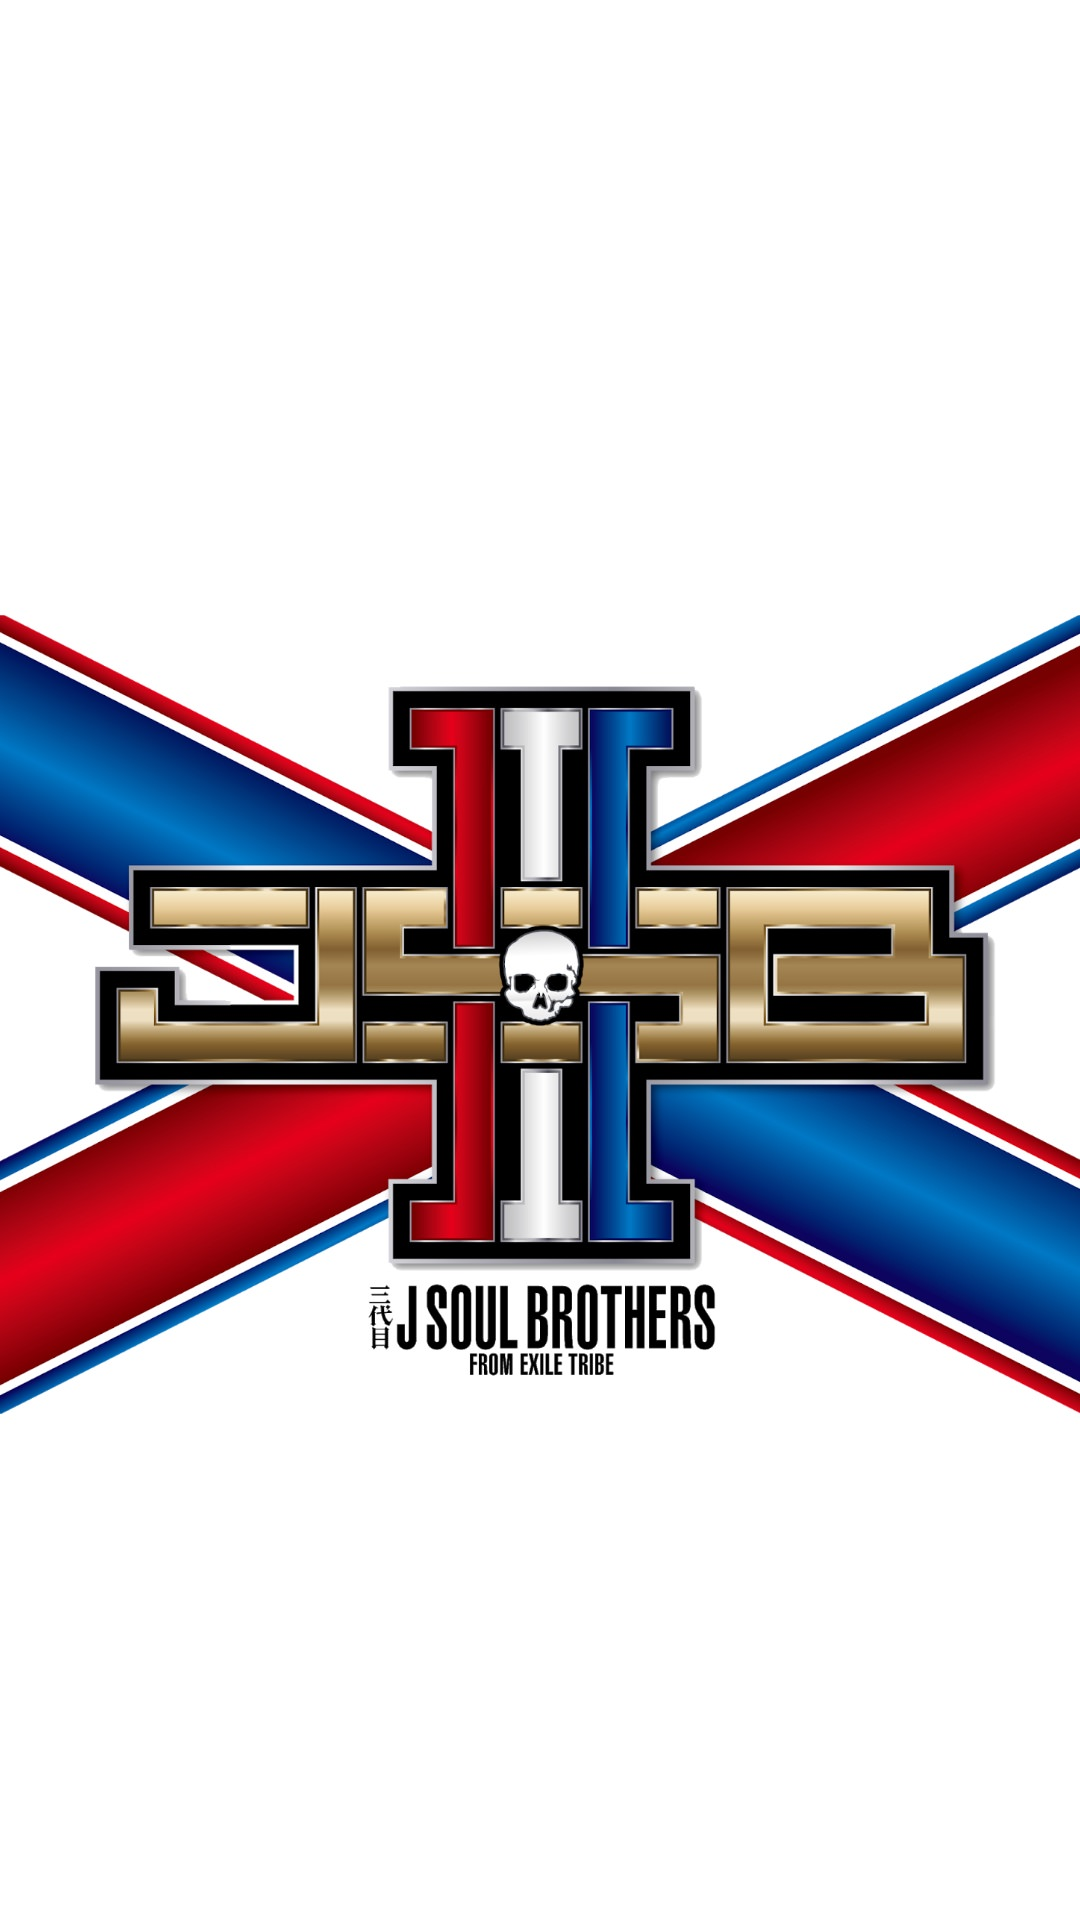 3jsb i28 - 三代目 J SOUL BROTHERSの高画質スマホ壁紙40枚 [iPhone&Androidに対応]